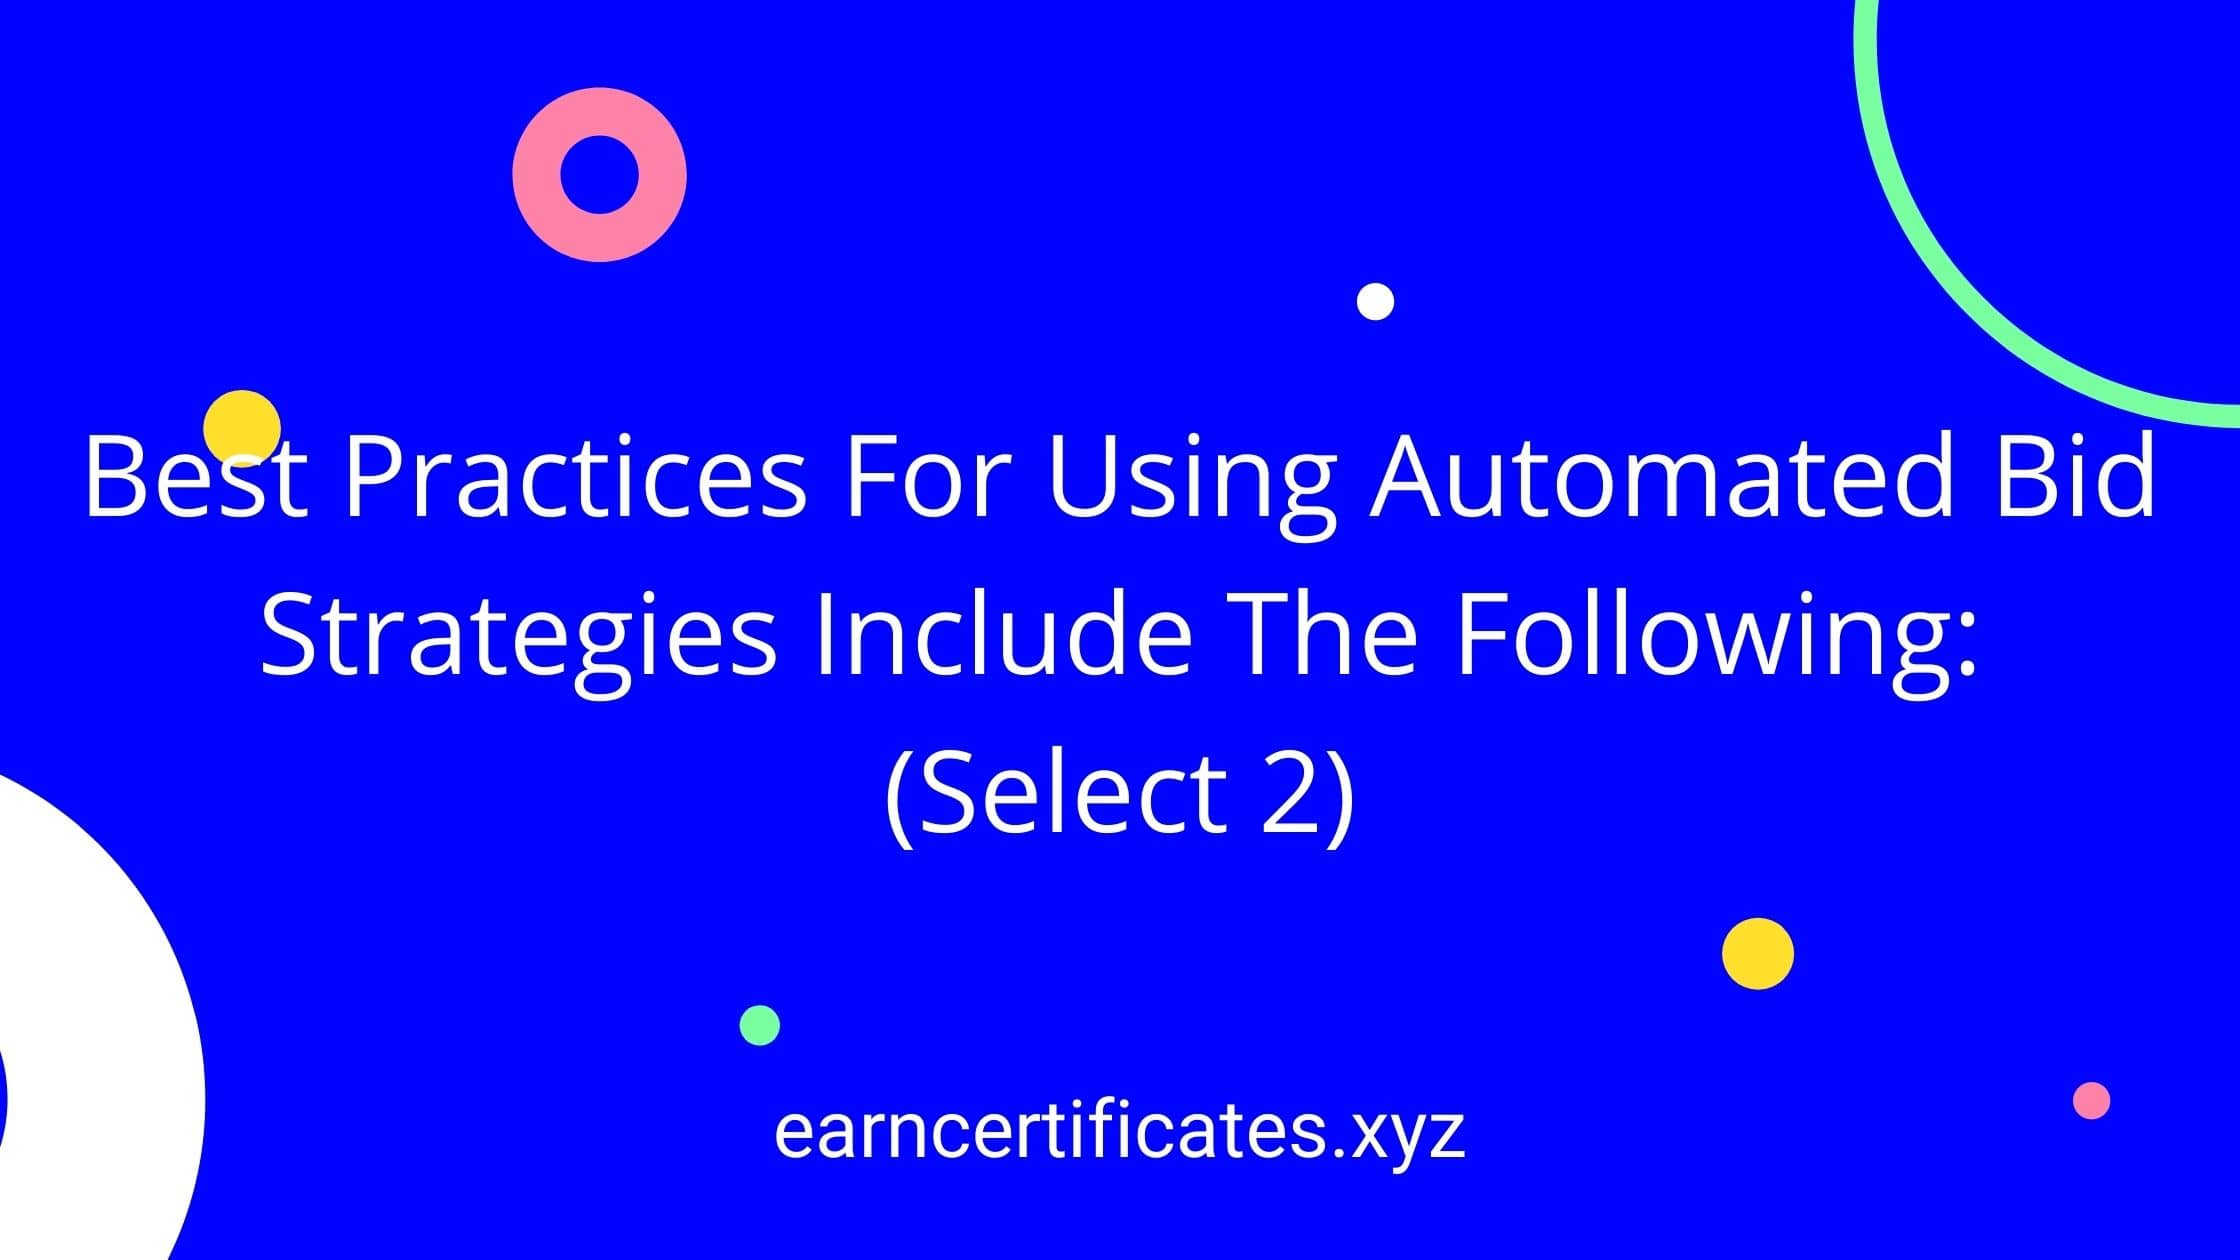 Best Practices For Using Automated Bid Strategies Include The Following: (Select 2)